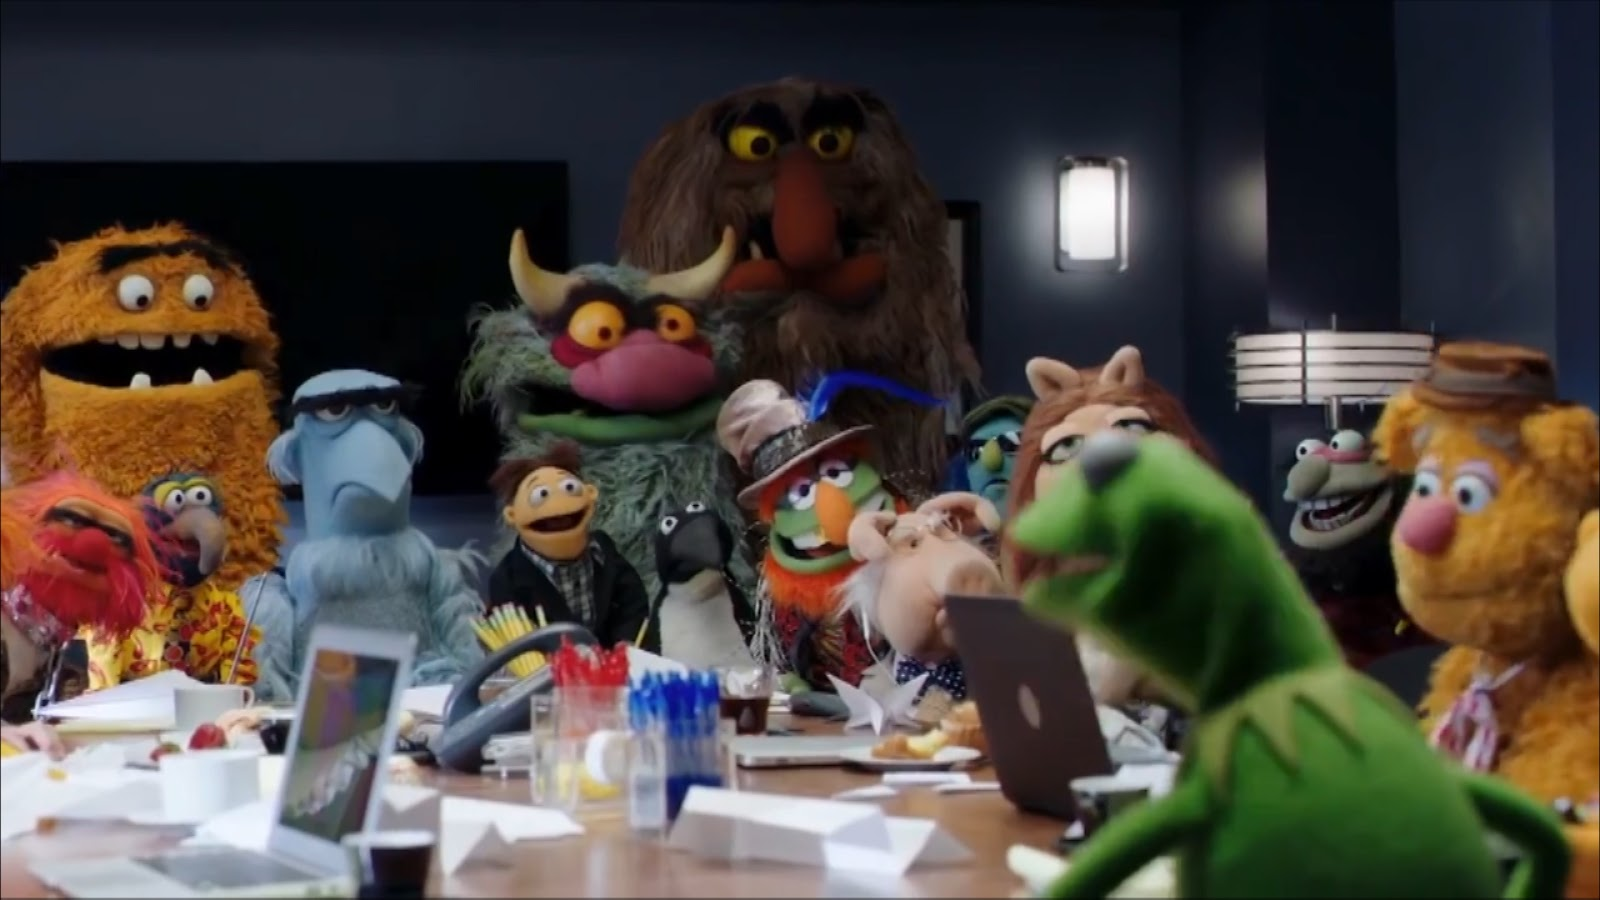 The Muppets children's entertainment or adult satire?